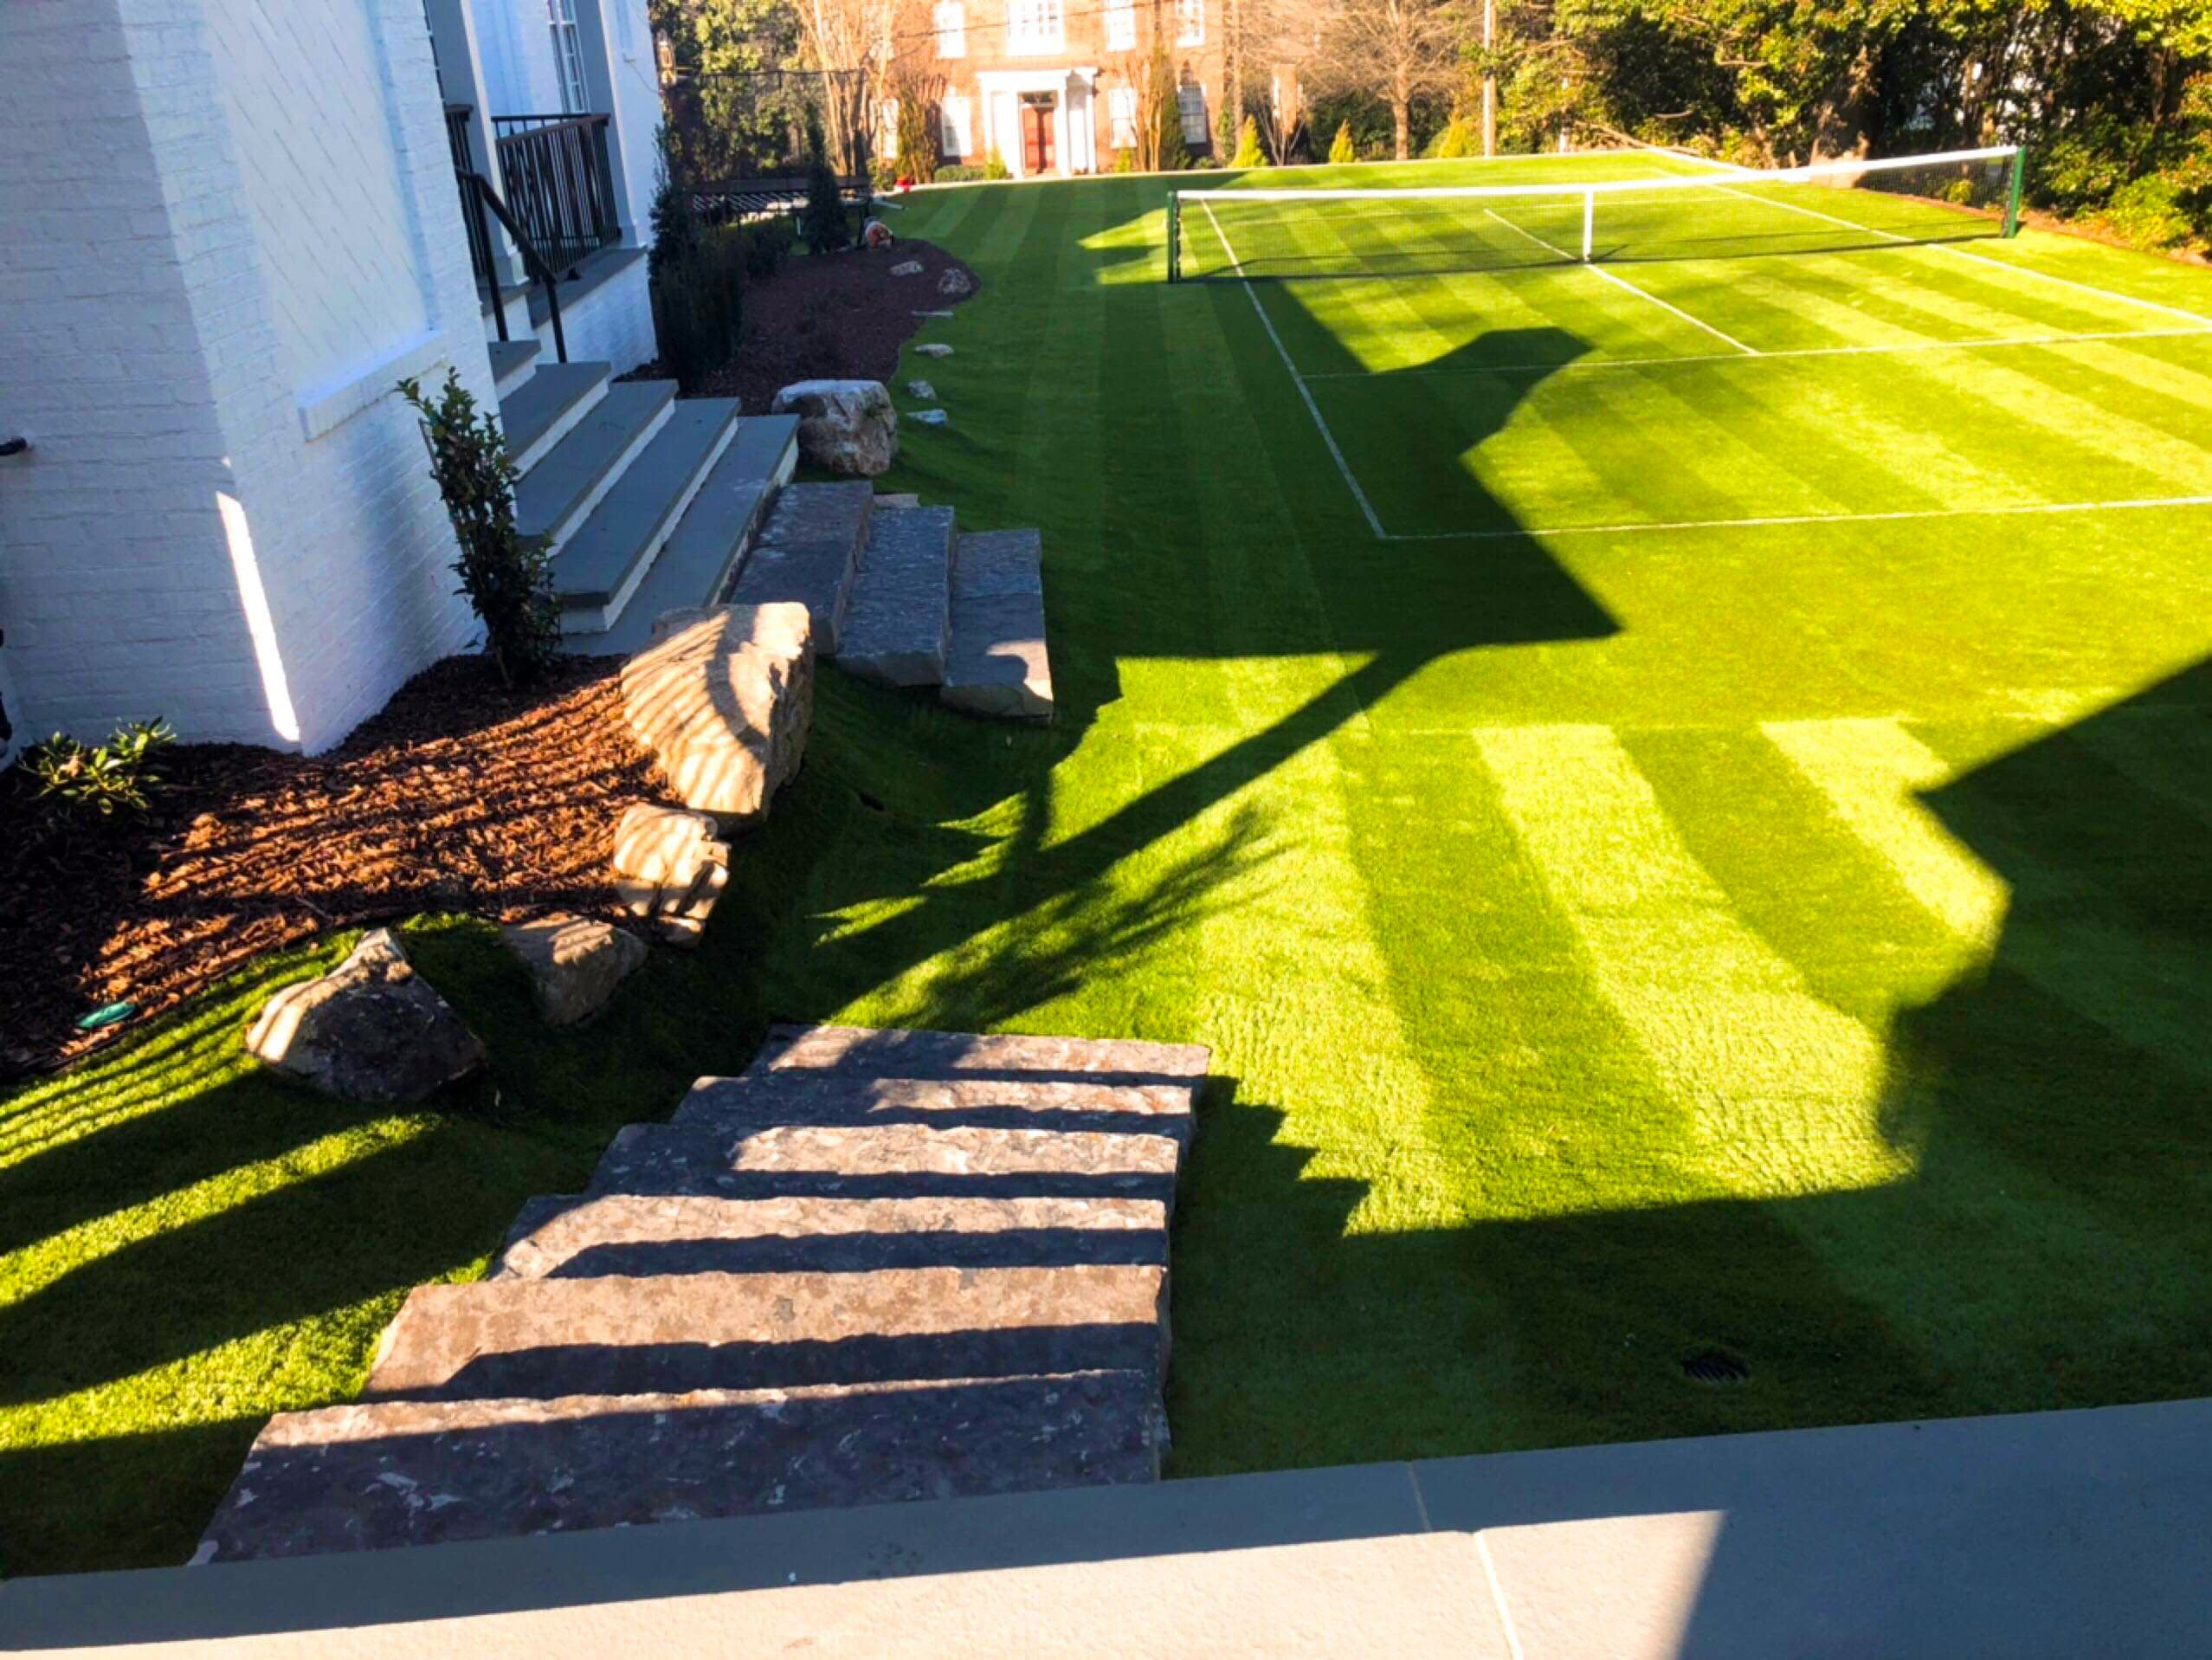 Lawn Stripes Add A Professional Look To The Tennis Court And The Rest Of A Lawn Visit Us On The Web At Http Www G Tennis Court Synthetic Grass Lawn Striping